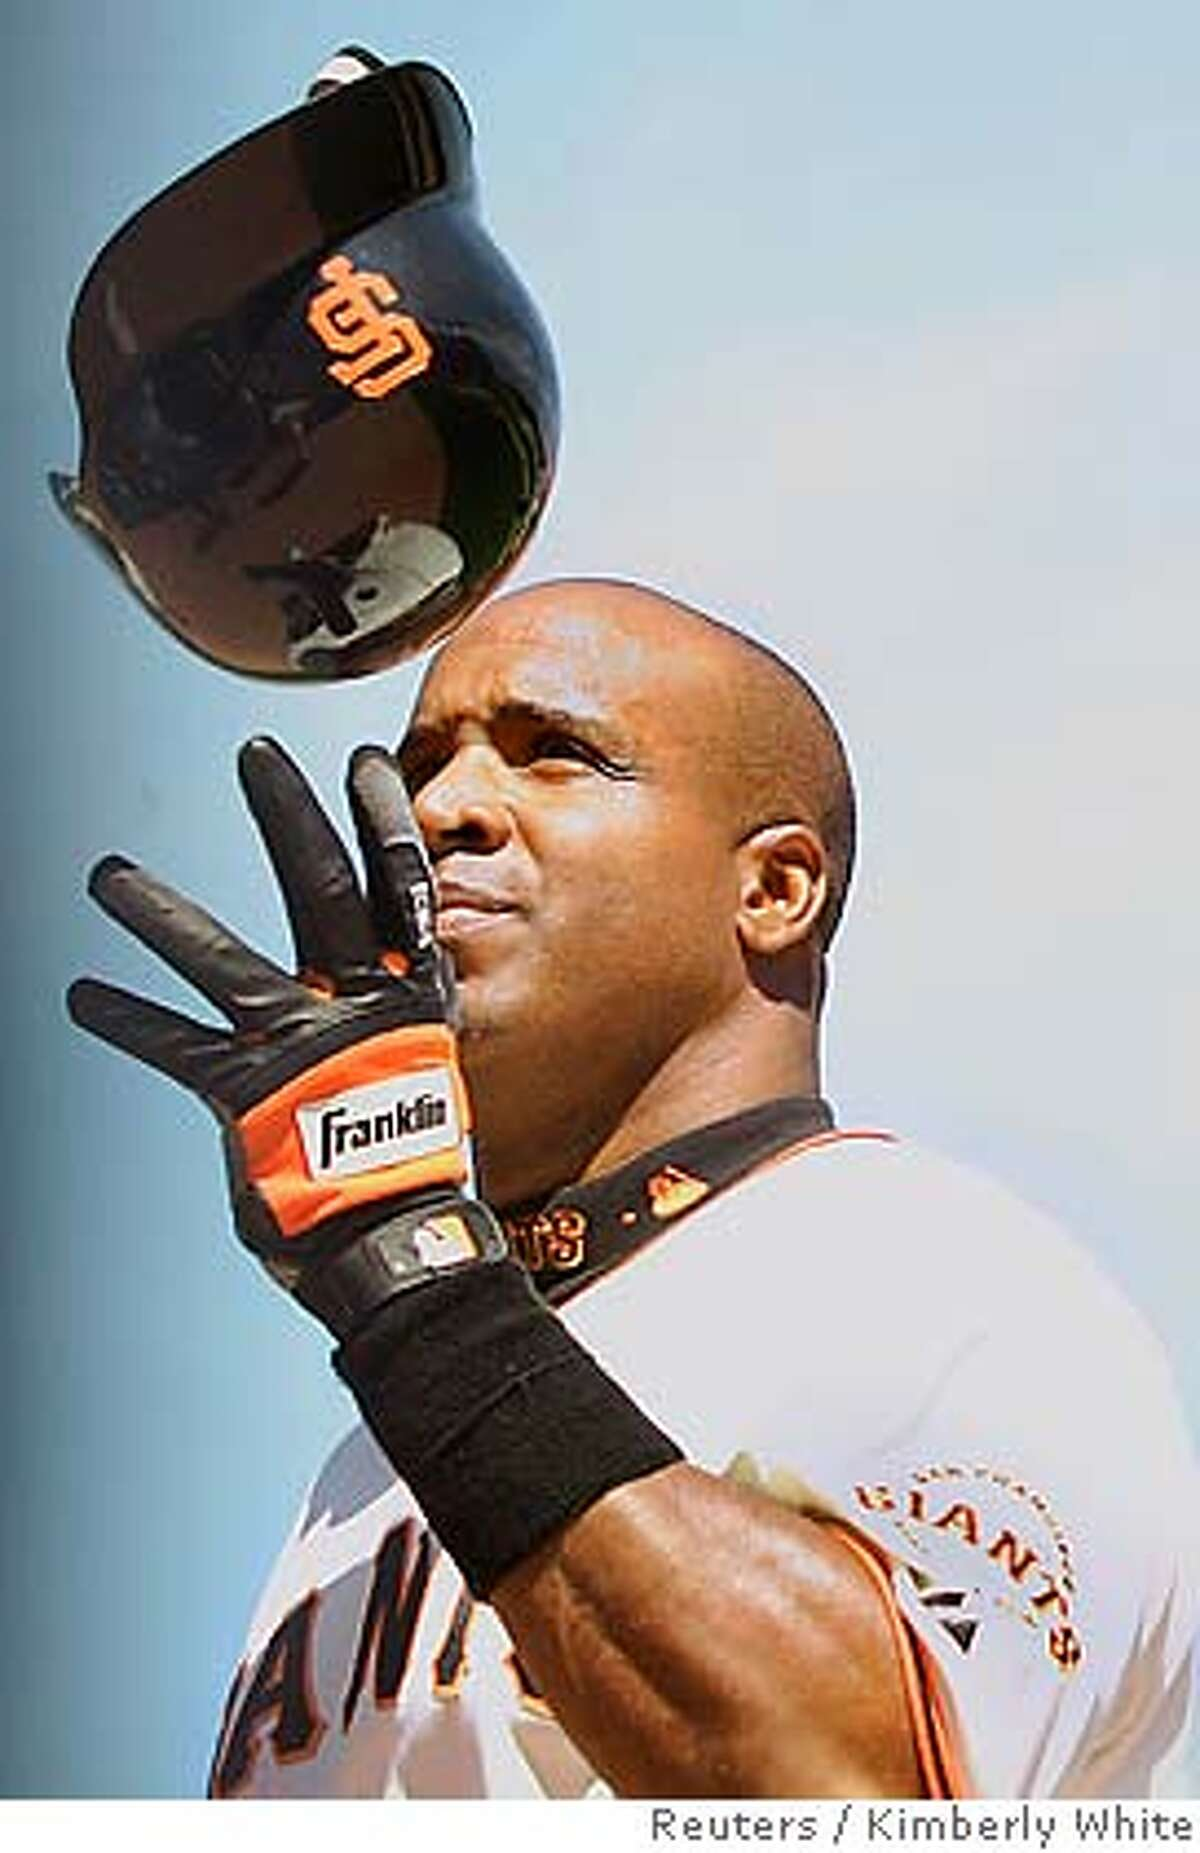 San Francisco Giants' Barry Bonds throws his helmet in the air after flying out in the eighth inning off of Chicago Cubs pitcher Will Ohman during a National League baseball game in San Francisco, California, in this file image taken May 11, 2006. Bonds and the Giants agreed to a one-year contract on January 29, 2007. REUTERS/Kimberly White/Files (UNITED STATES)